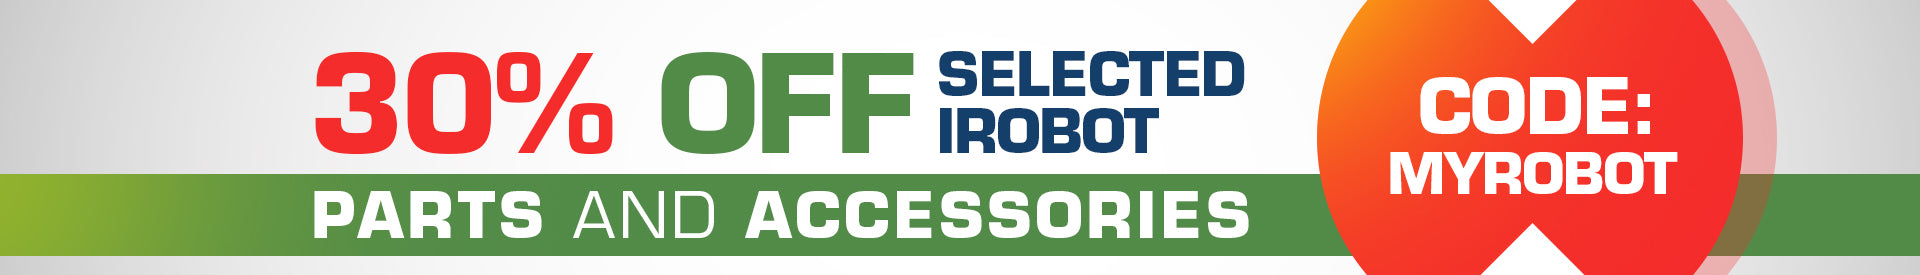 30% off Selected iRobot Parts and Accessories Use Code MYROBOT at Checkout | Robot Specialist